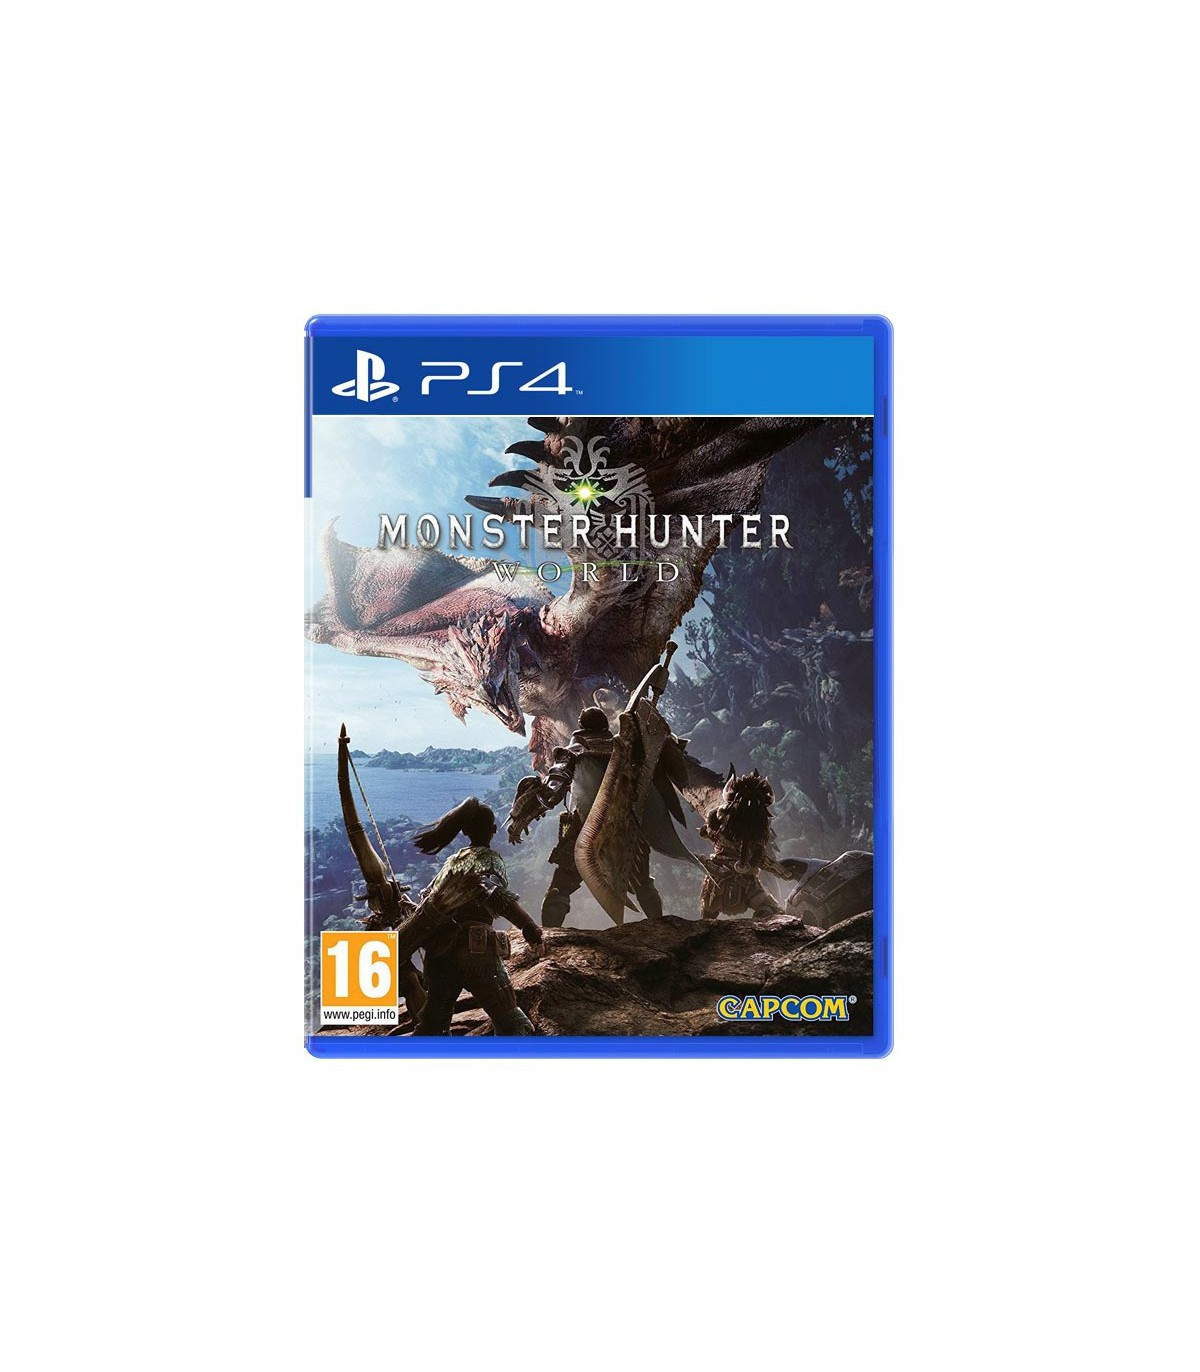 بازی Monster Hunter: World - پلی استیشن 4